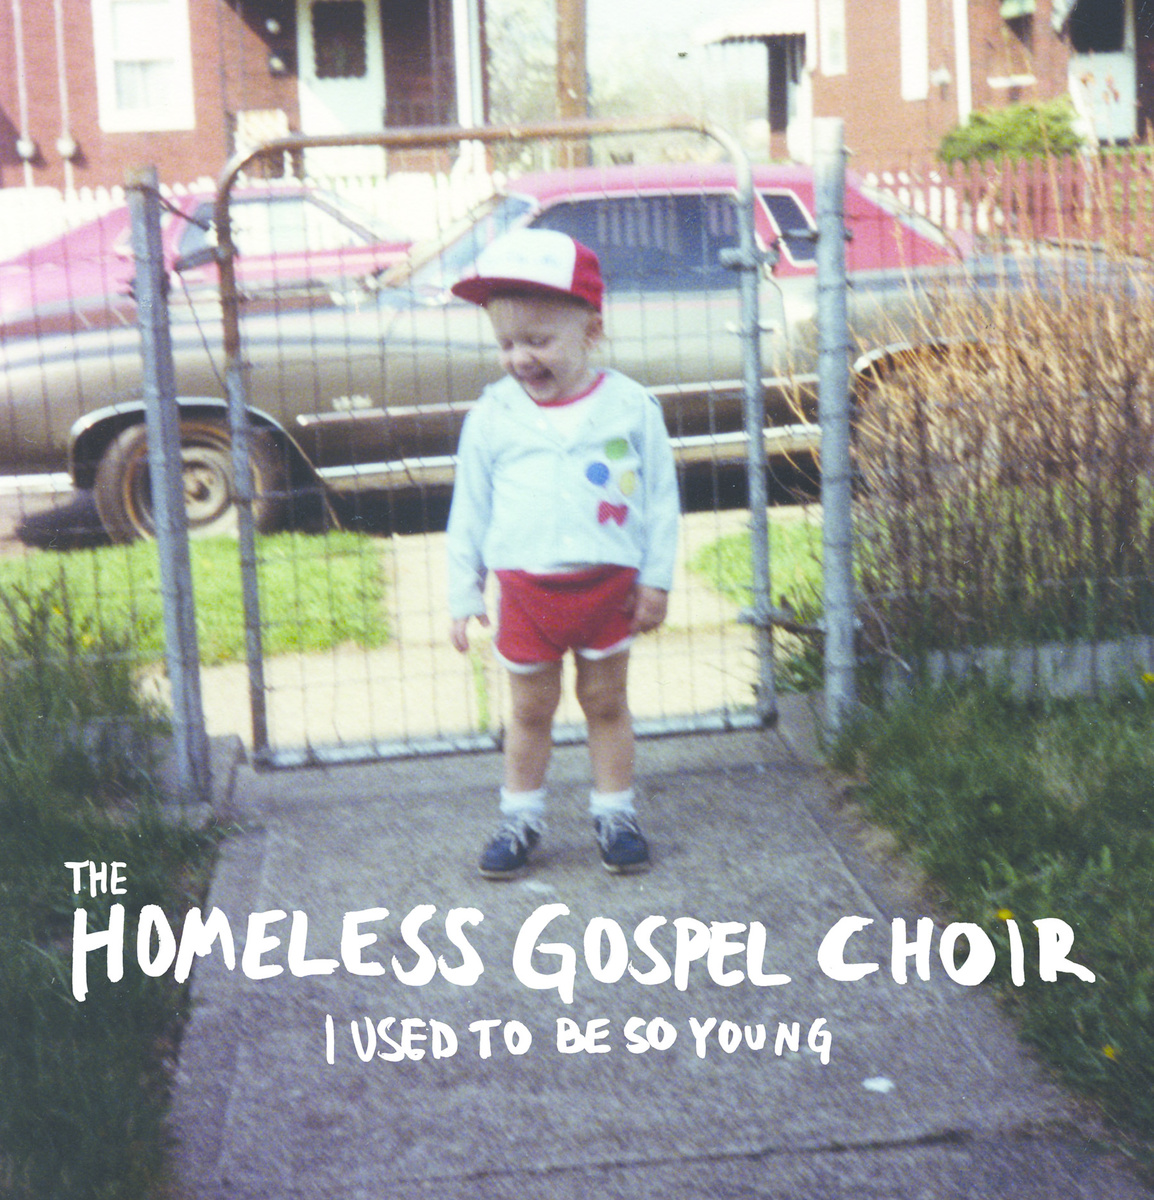 Homeless Gospel Choir - I Used To Be So Young